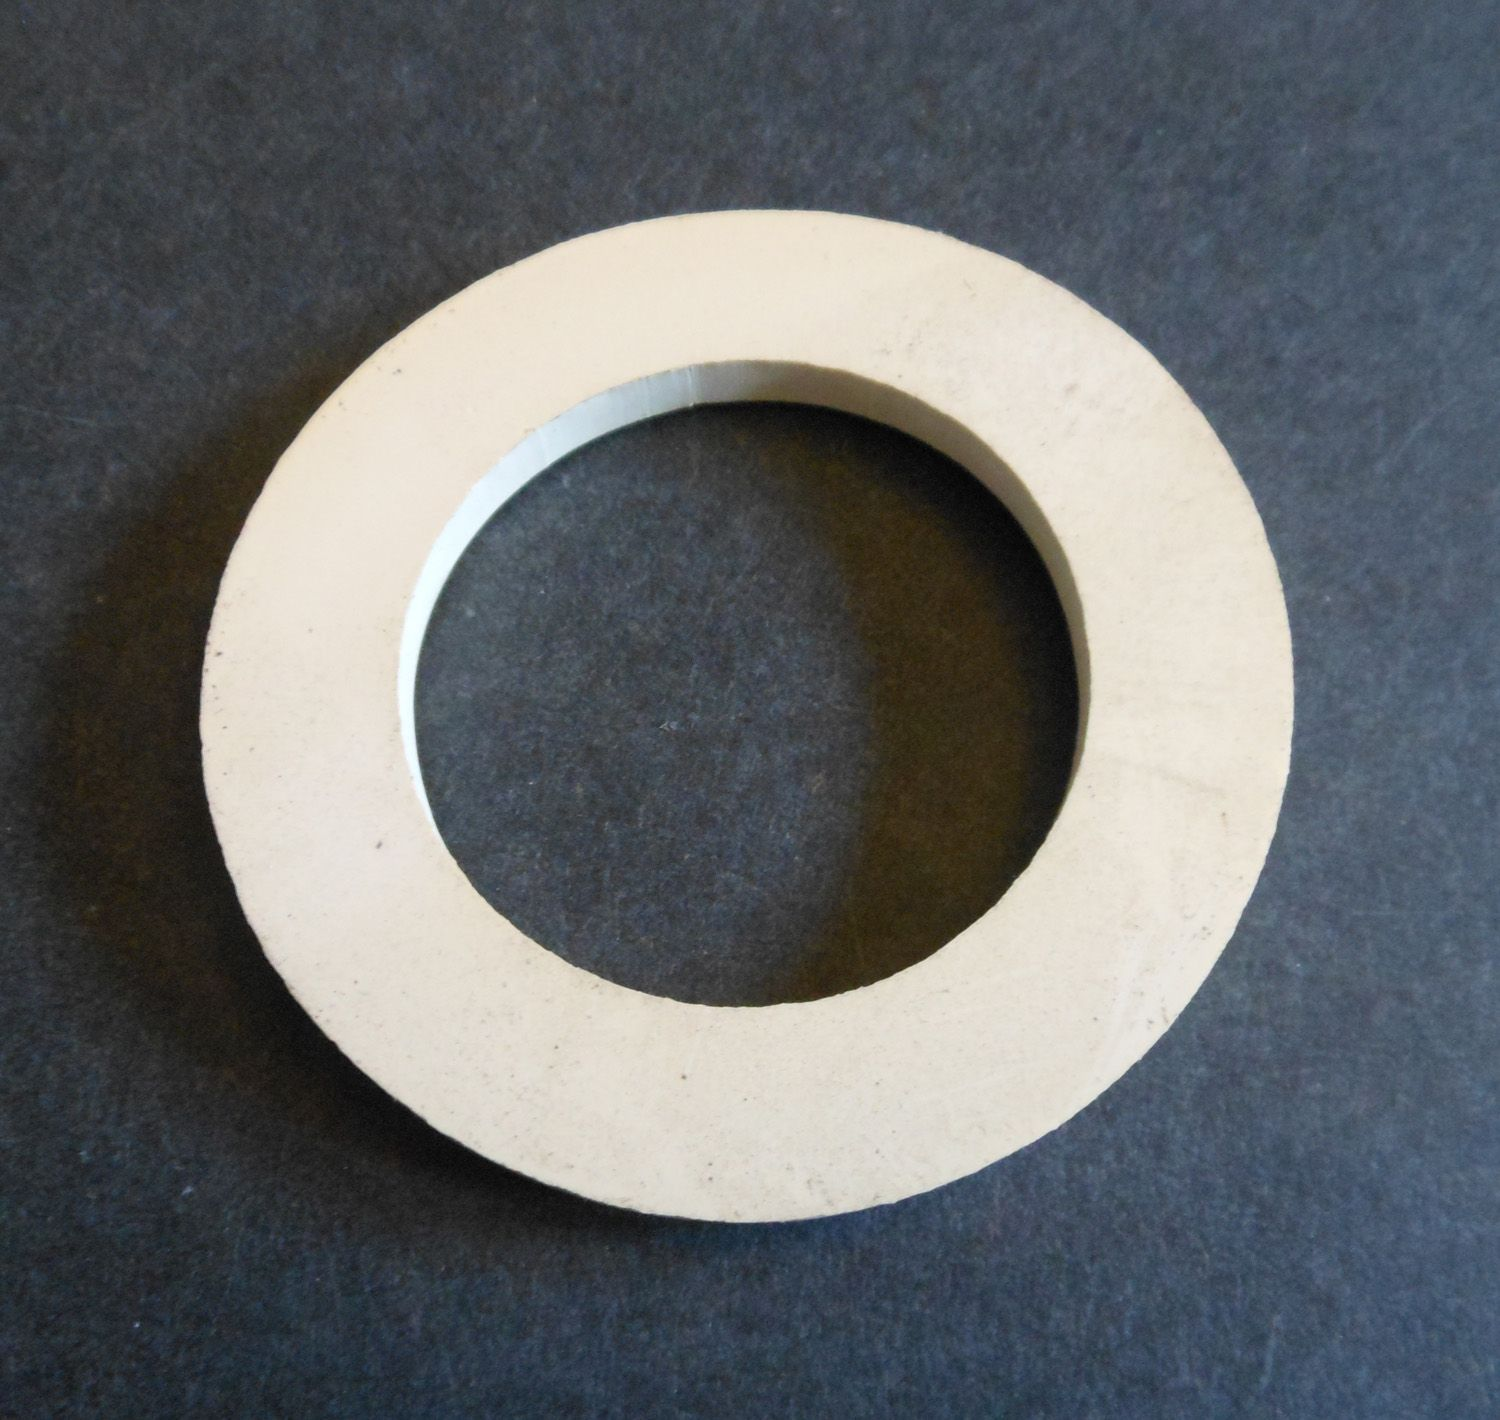 Jar Gasket New Sunset Rubber Jar Gasket Is A Retrofit For Girton Washer Gasket Has A 2 3 4 Outside Diameter With A 1 11 16 Inside Diameter Jar The Outsiders